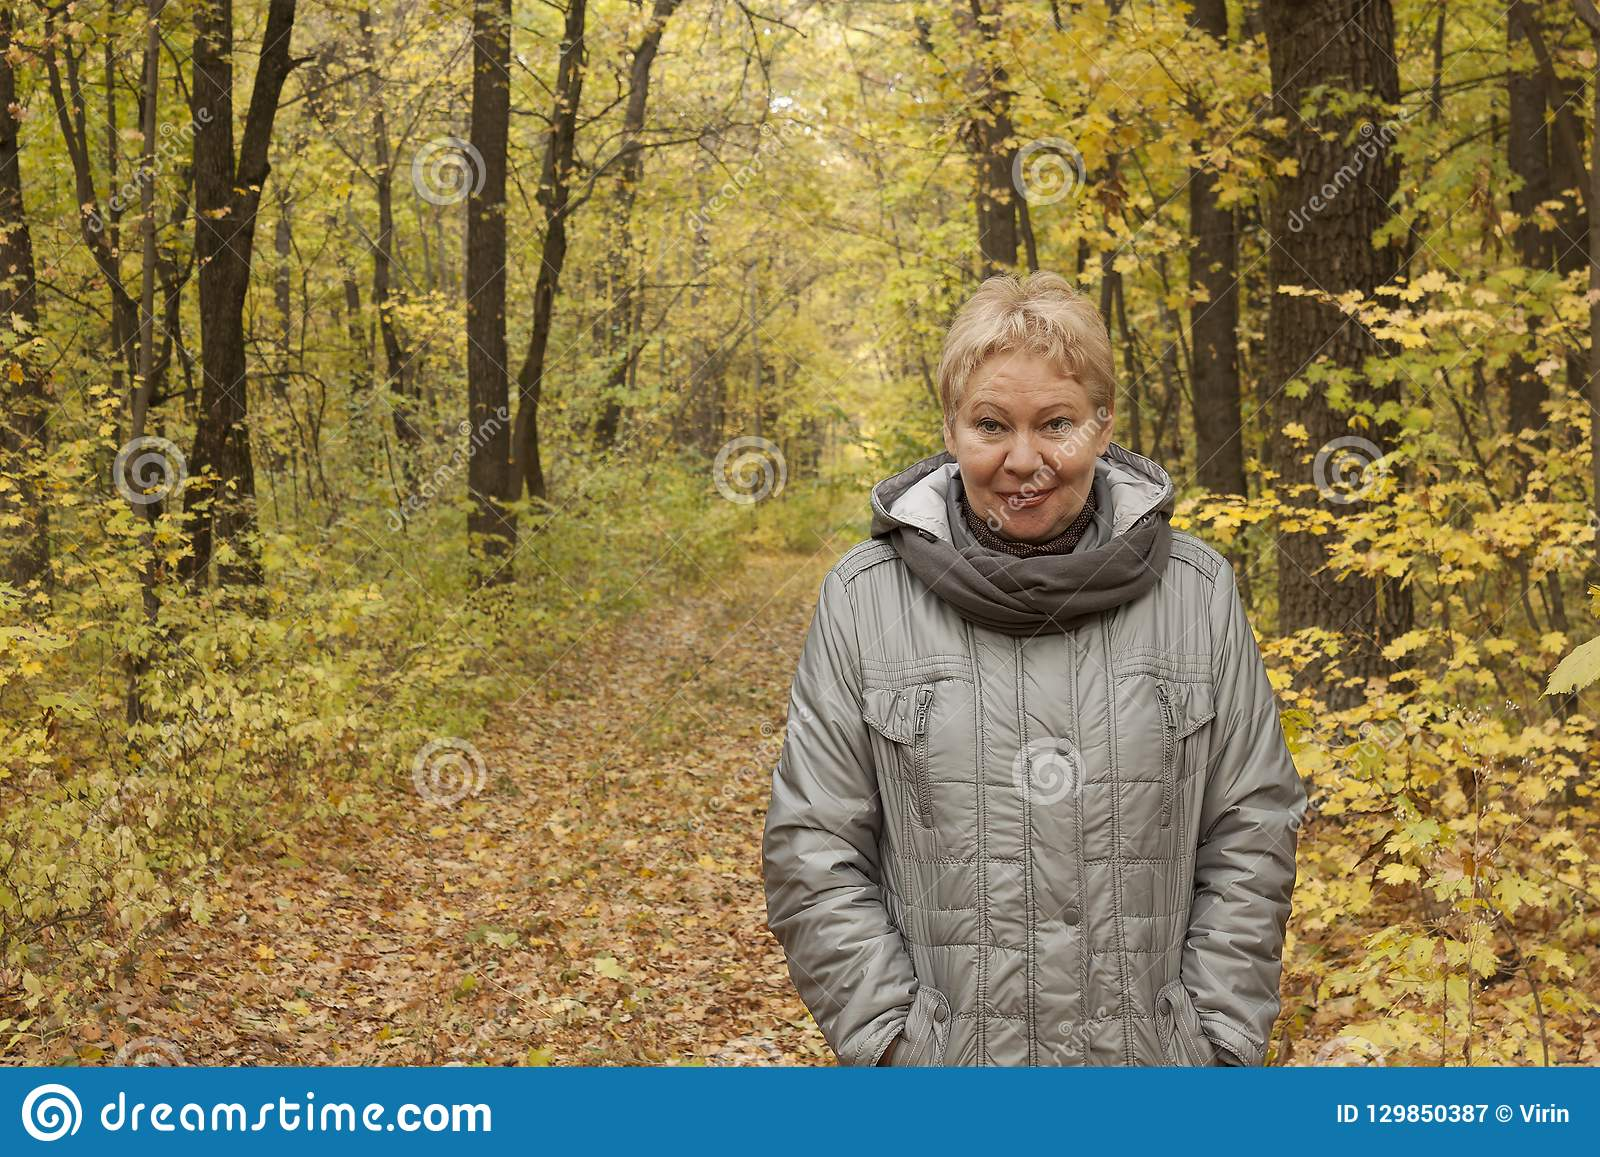 A Woman Of Mature Age In The Forest With Yellow Leaves Stock Image